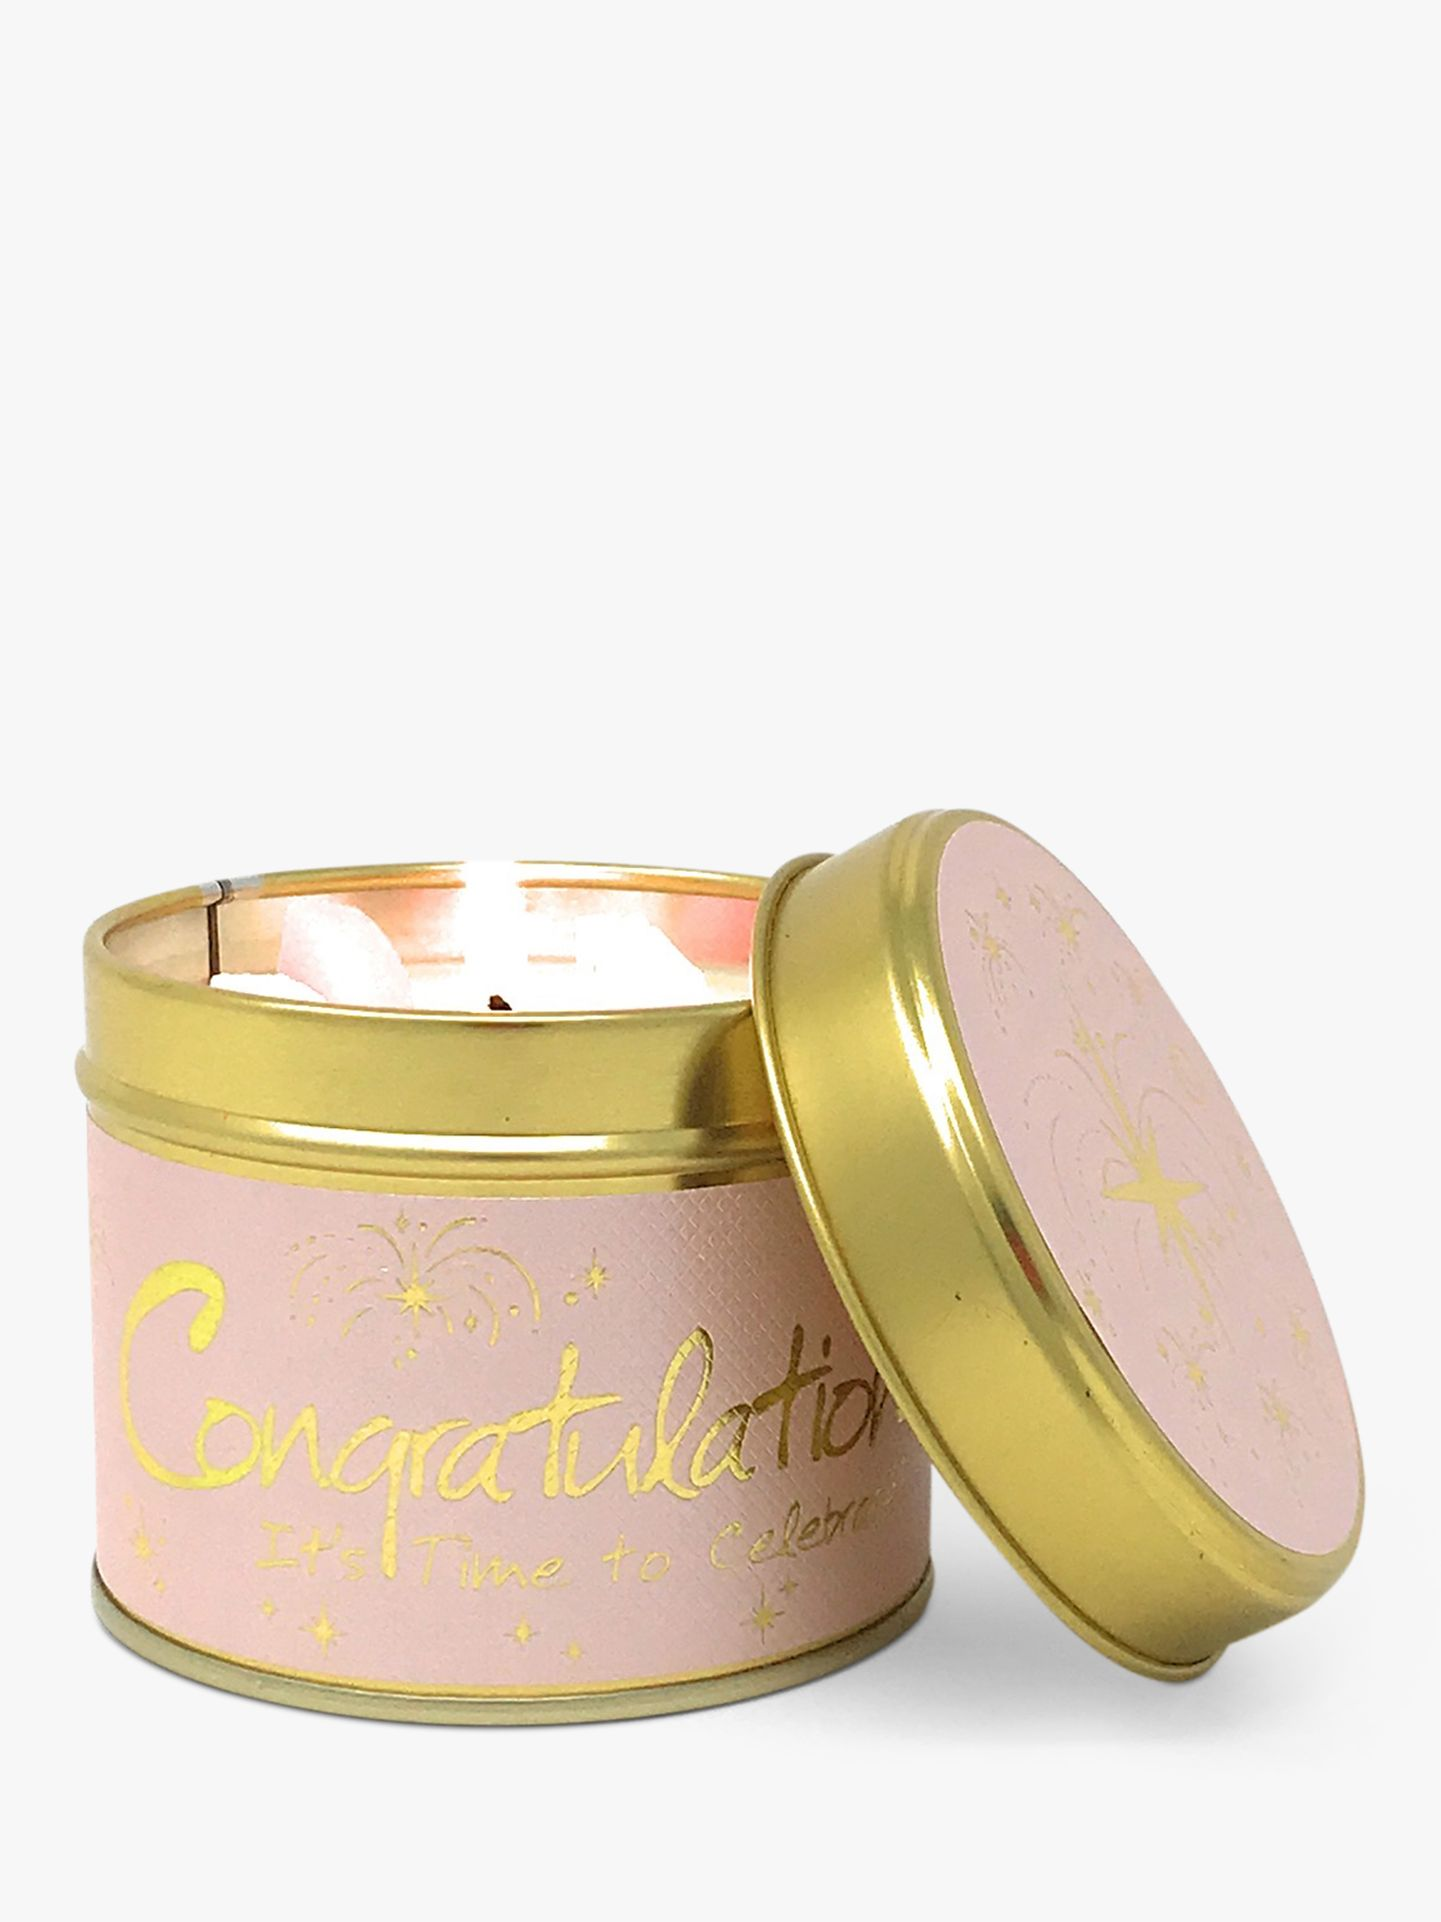 Lily-Flame Lily-flame Congratulations Tin Scented Candle, 250g